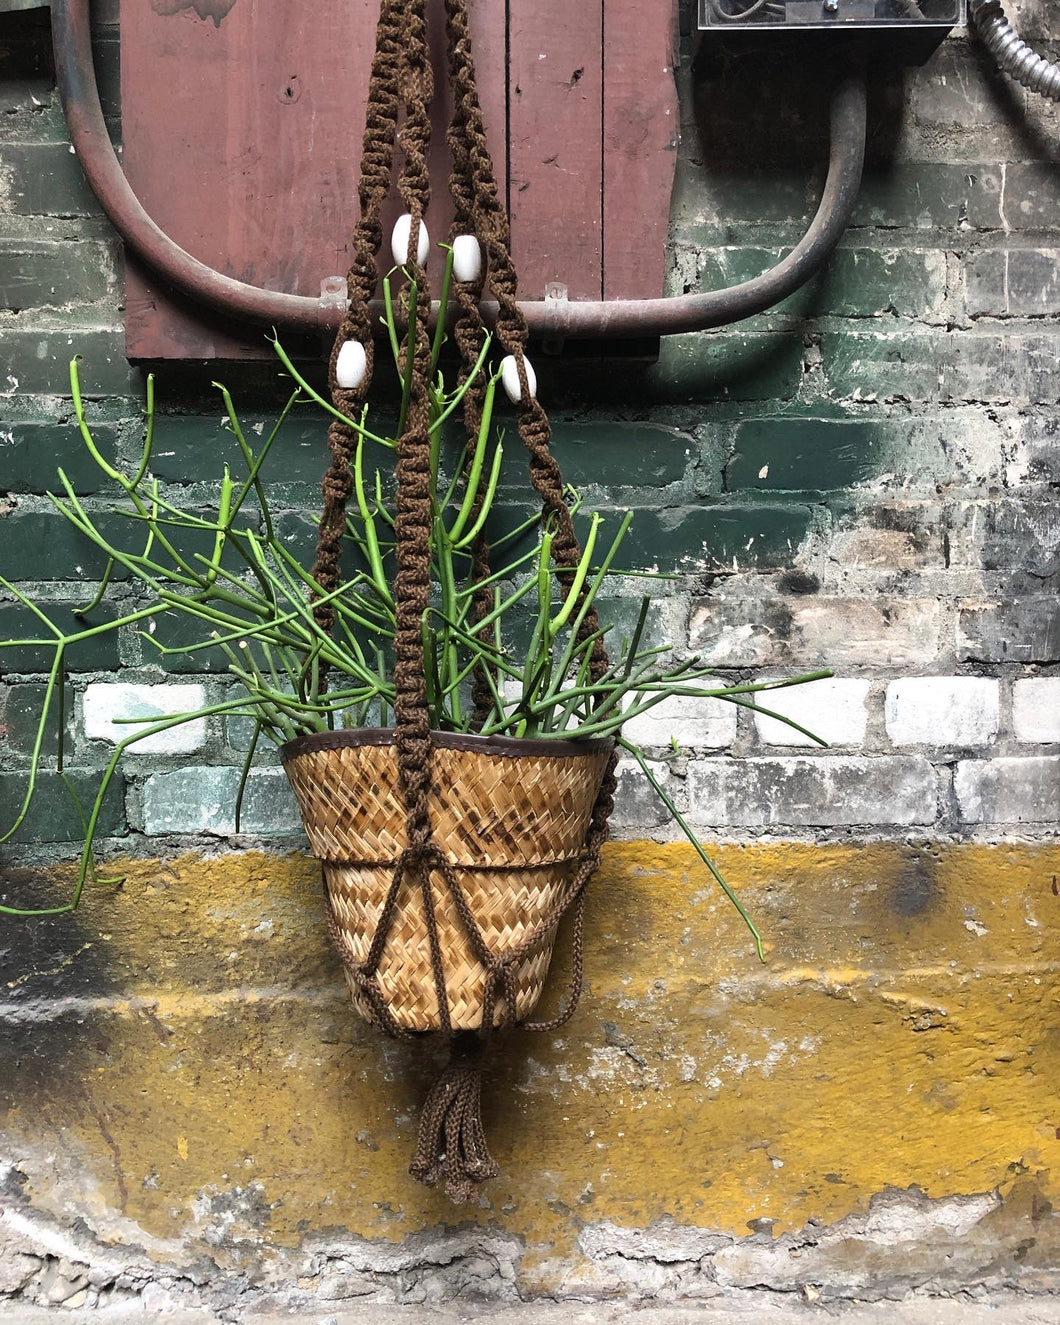 Hanging Macrame Hanging Planter w/ Basket and Pencil Cactus